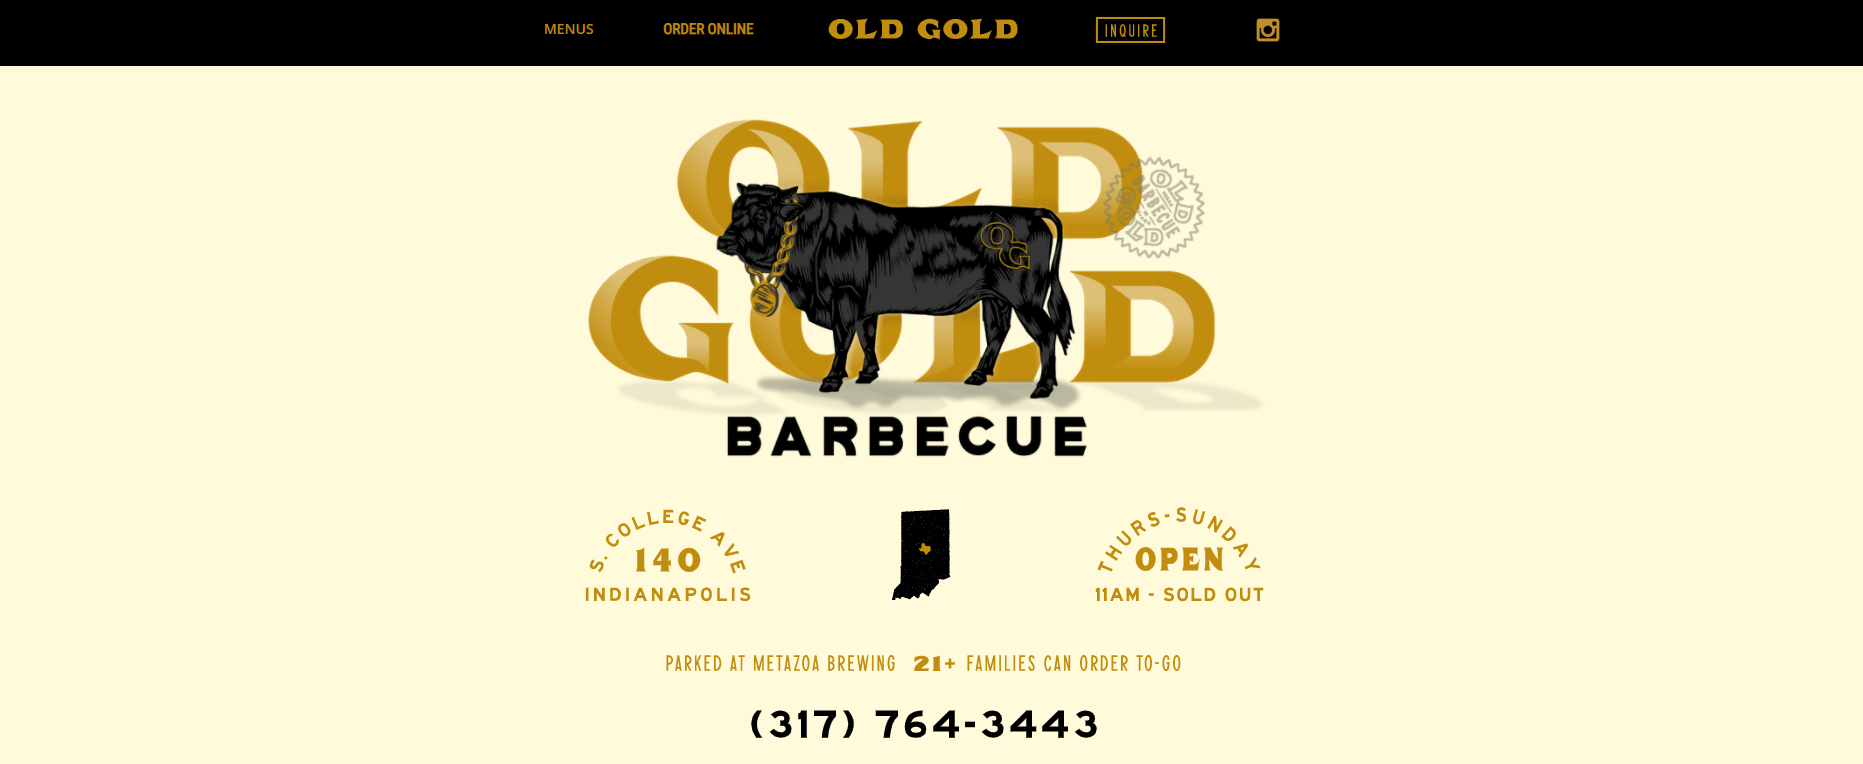 Old Gold Barbeque